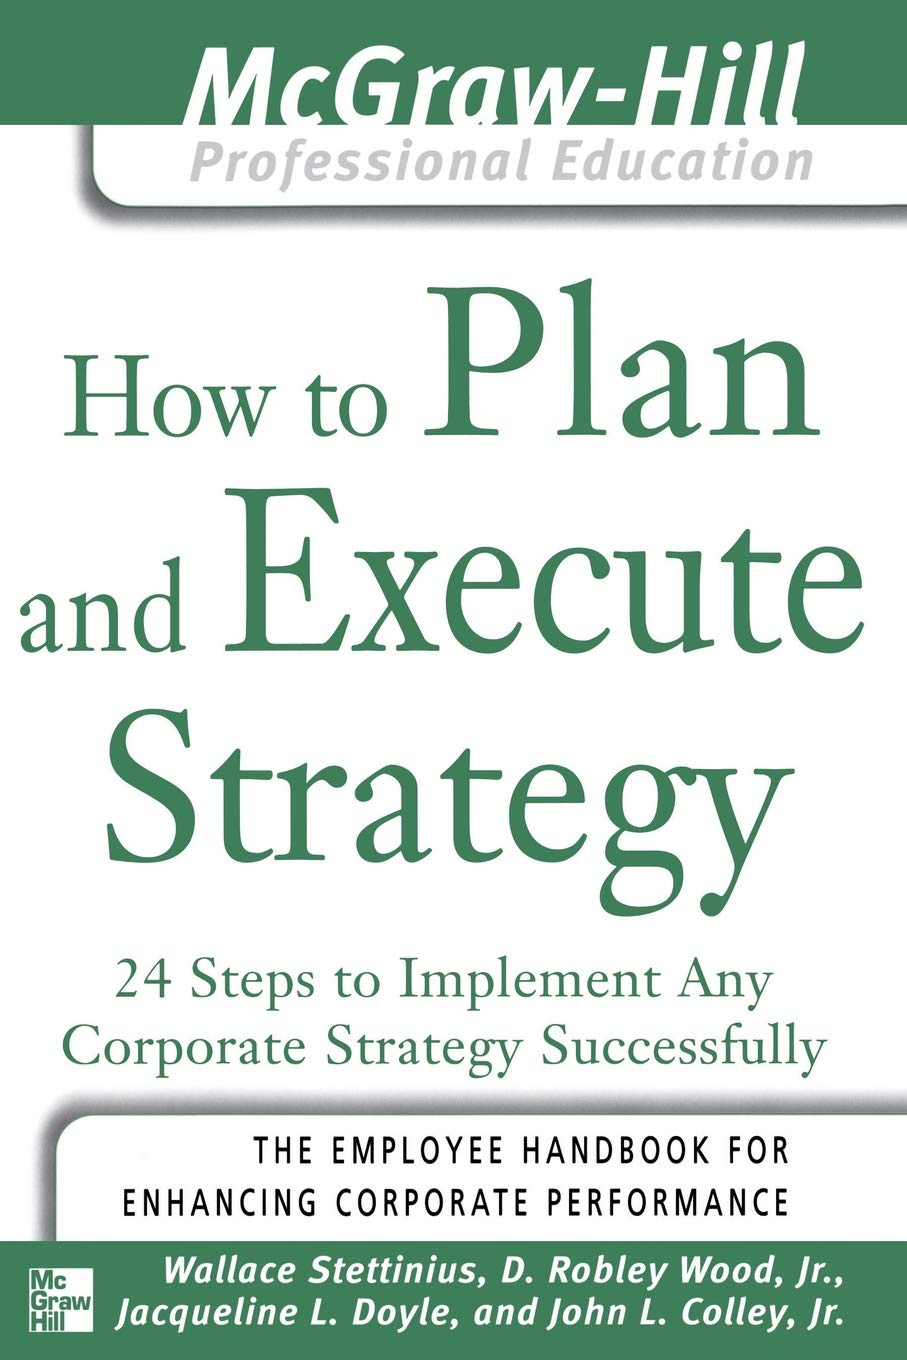 Download How to Plan and Execute Strategy: 24 Steps to Implement Any Corporate Strategy Successfully (The McGraw-Hill Professional Education Series) ebook